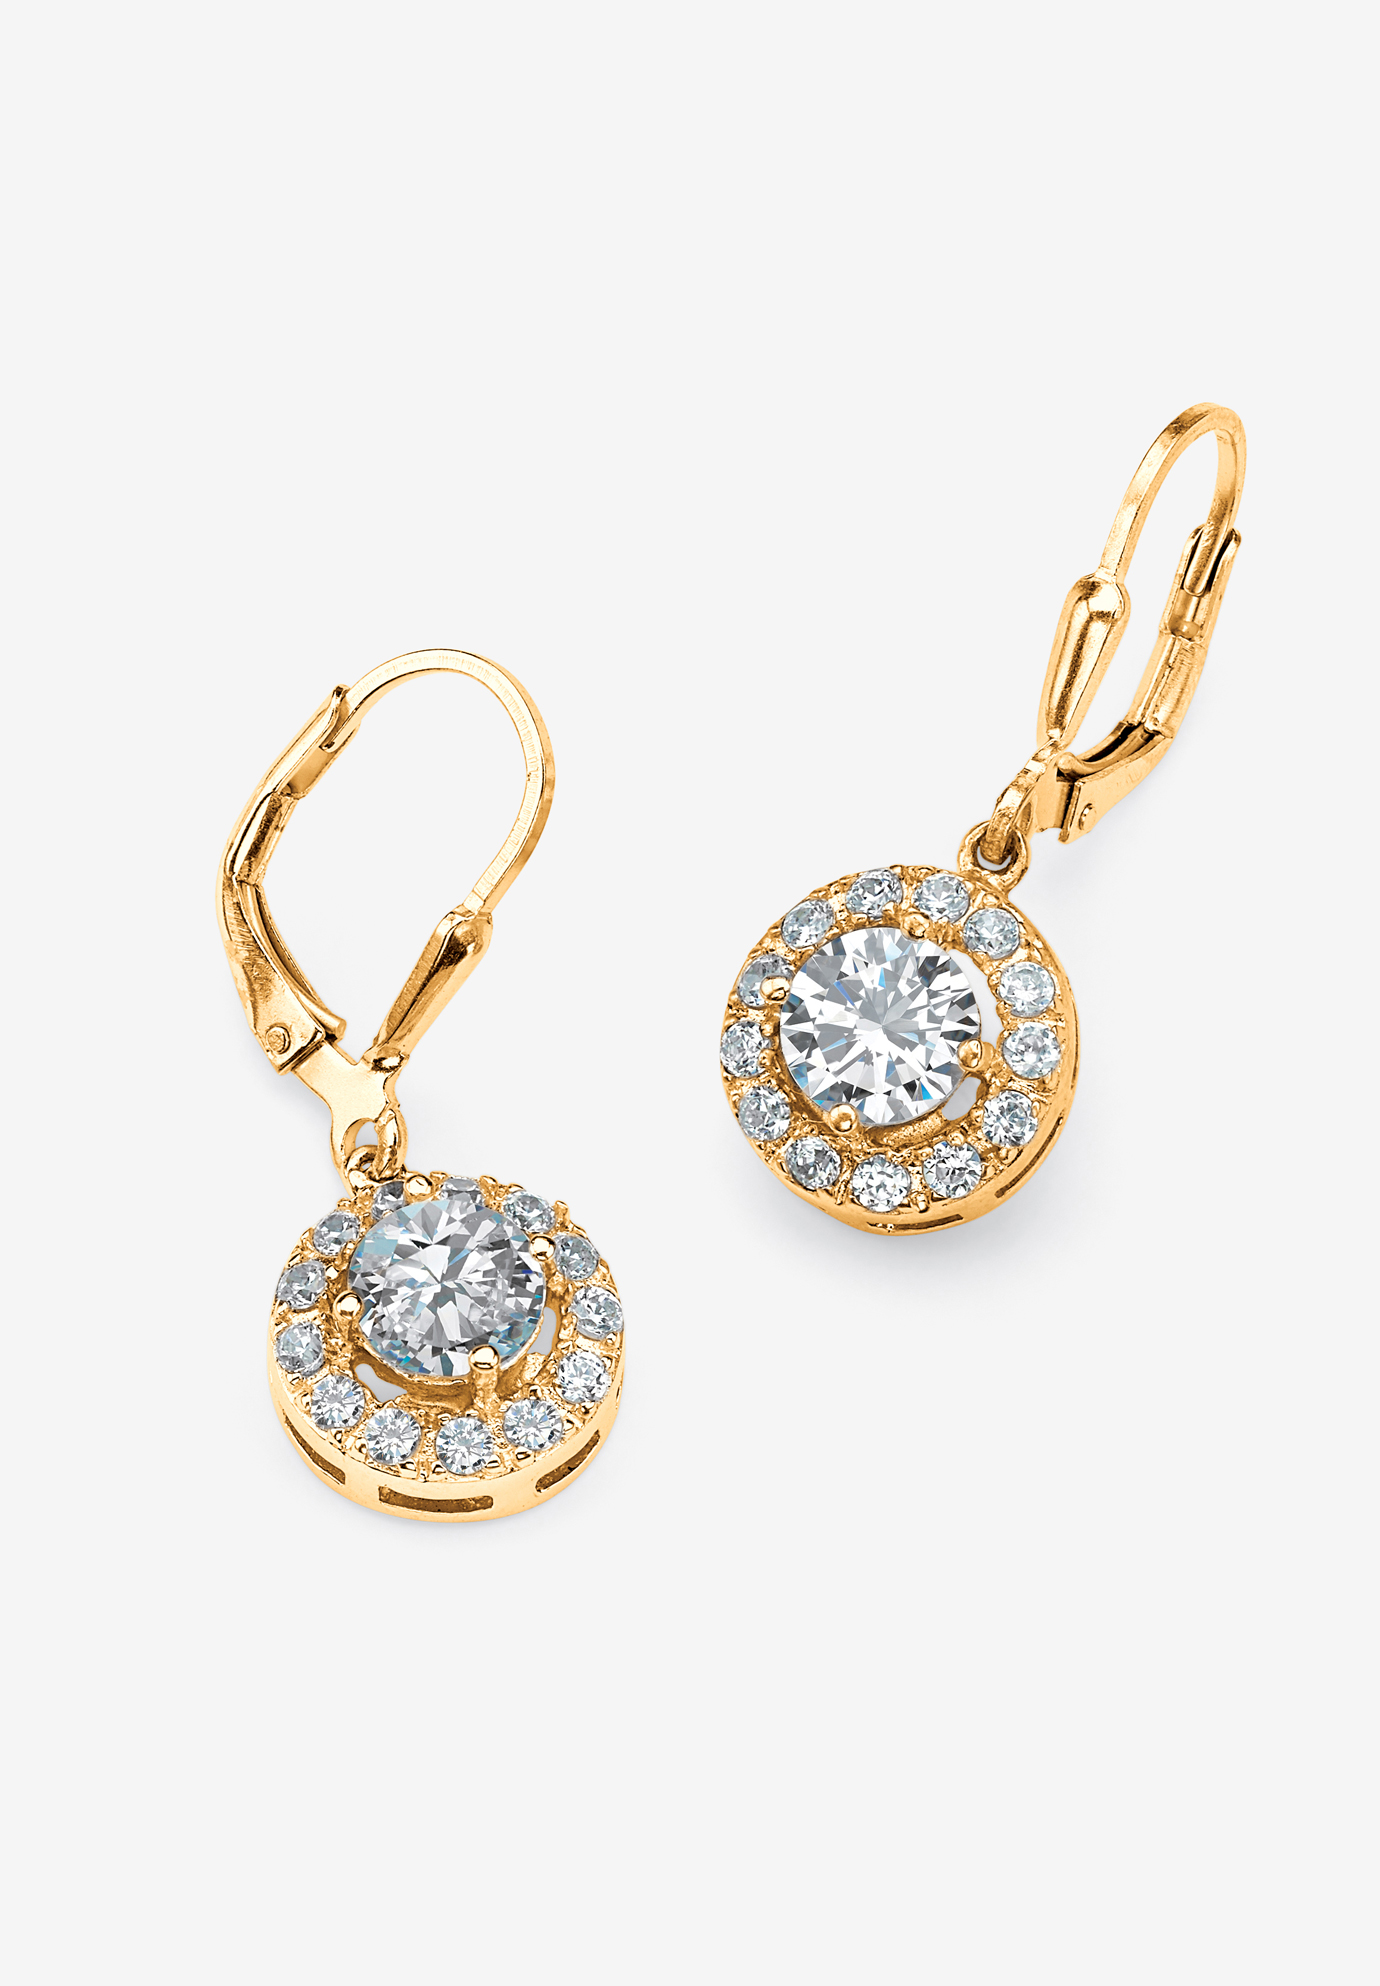 Cubic Zirconia Round Halo Drop Earrings in Gold over Sterling Silver, GOLD